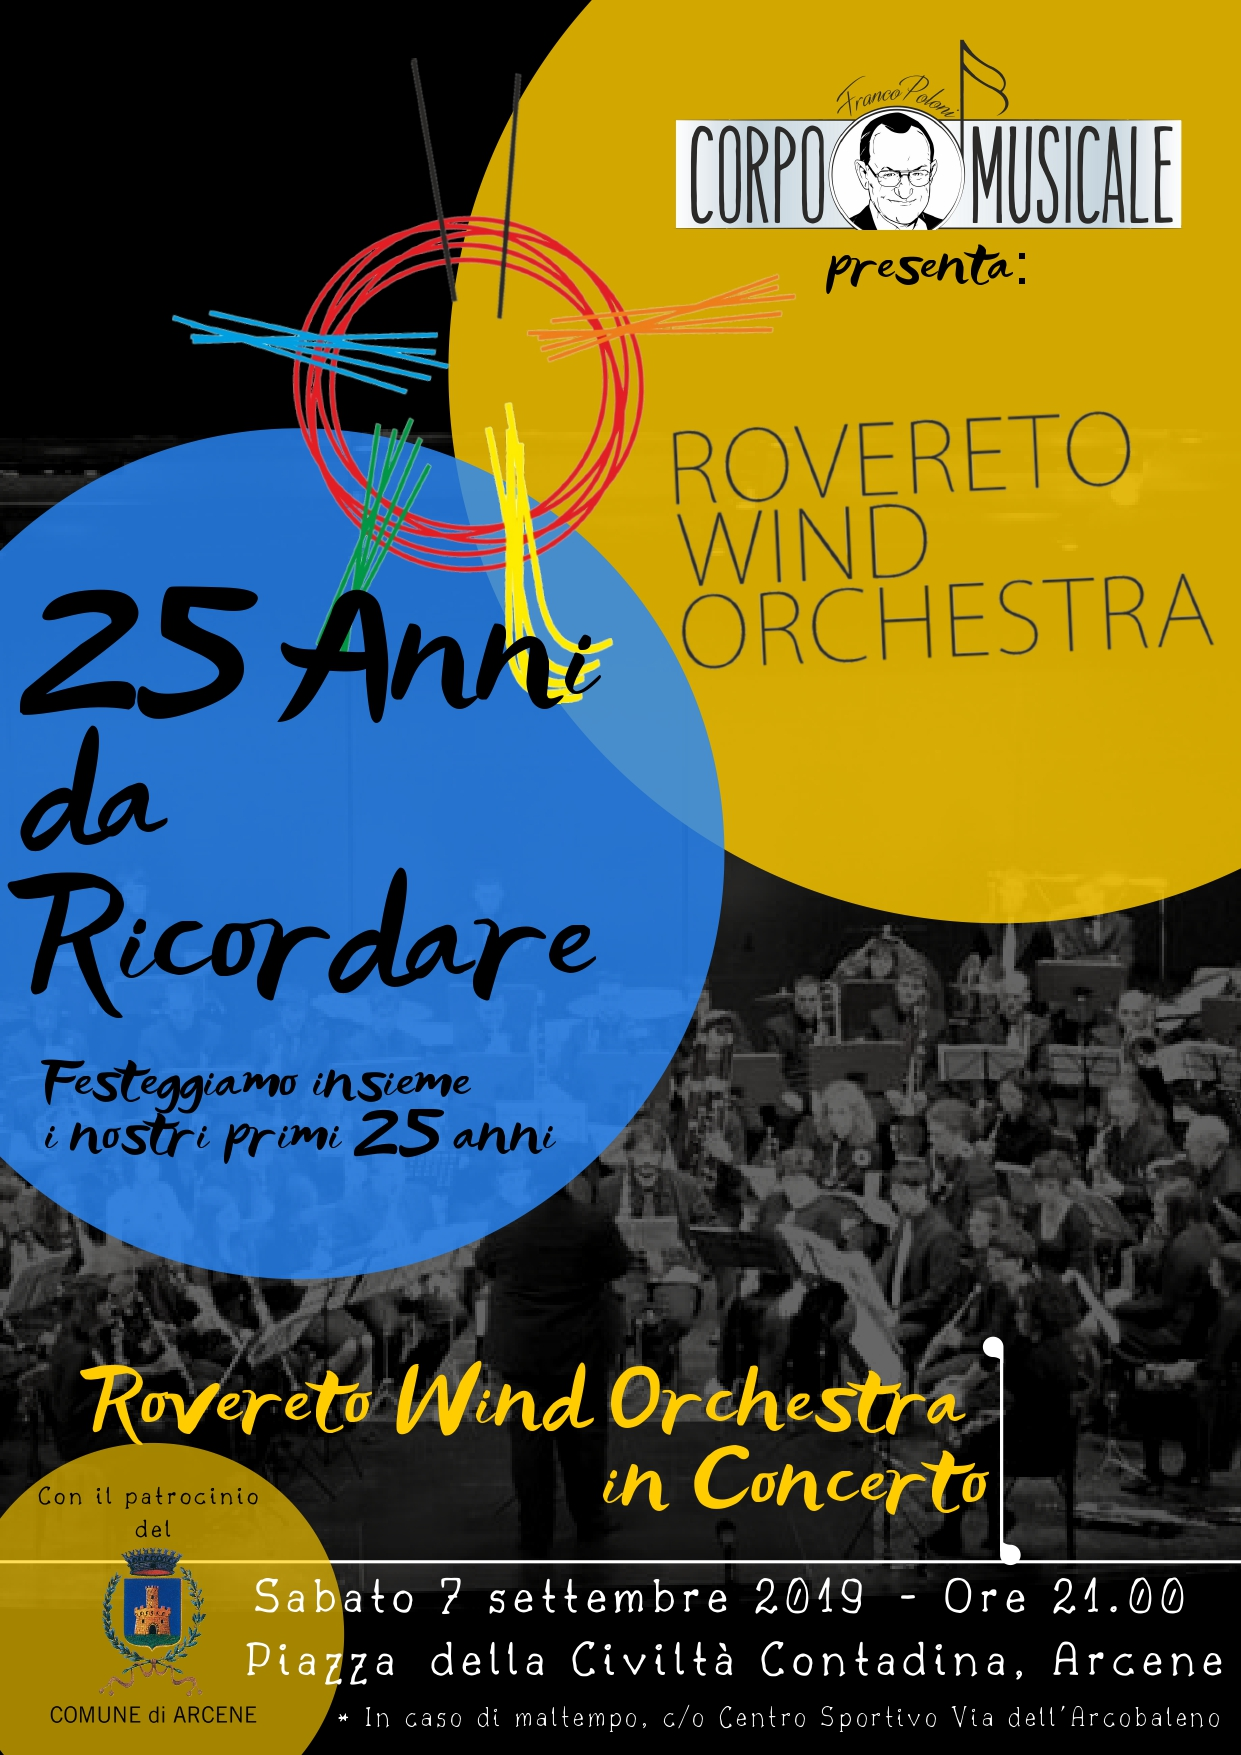 ROVERETO WIND ORCHESTRA in concerto